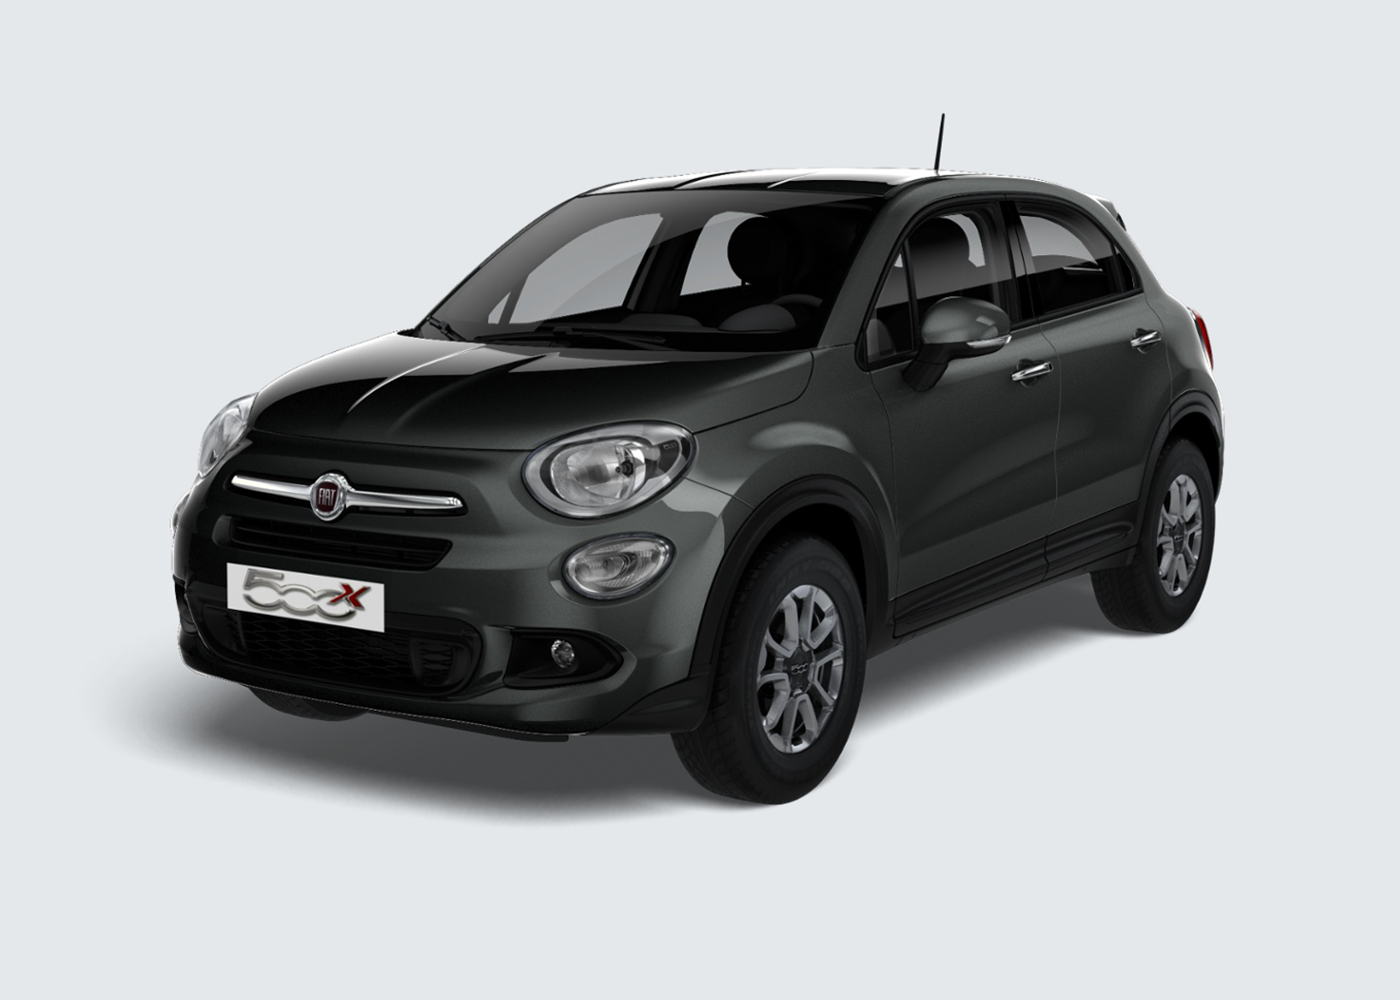 fiat 500x 1 4 multiair 140 cv pop star grigio moda km0 a soli 18620 su miacar tjd0p. Black Bedroom Furniture Sets. Home Design Ideas